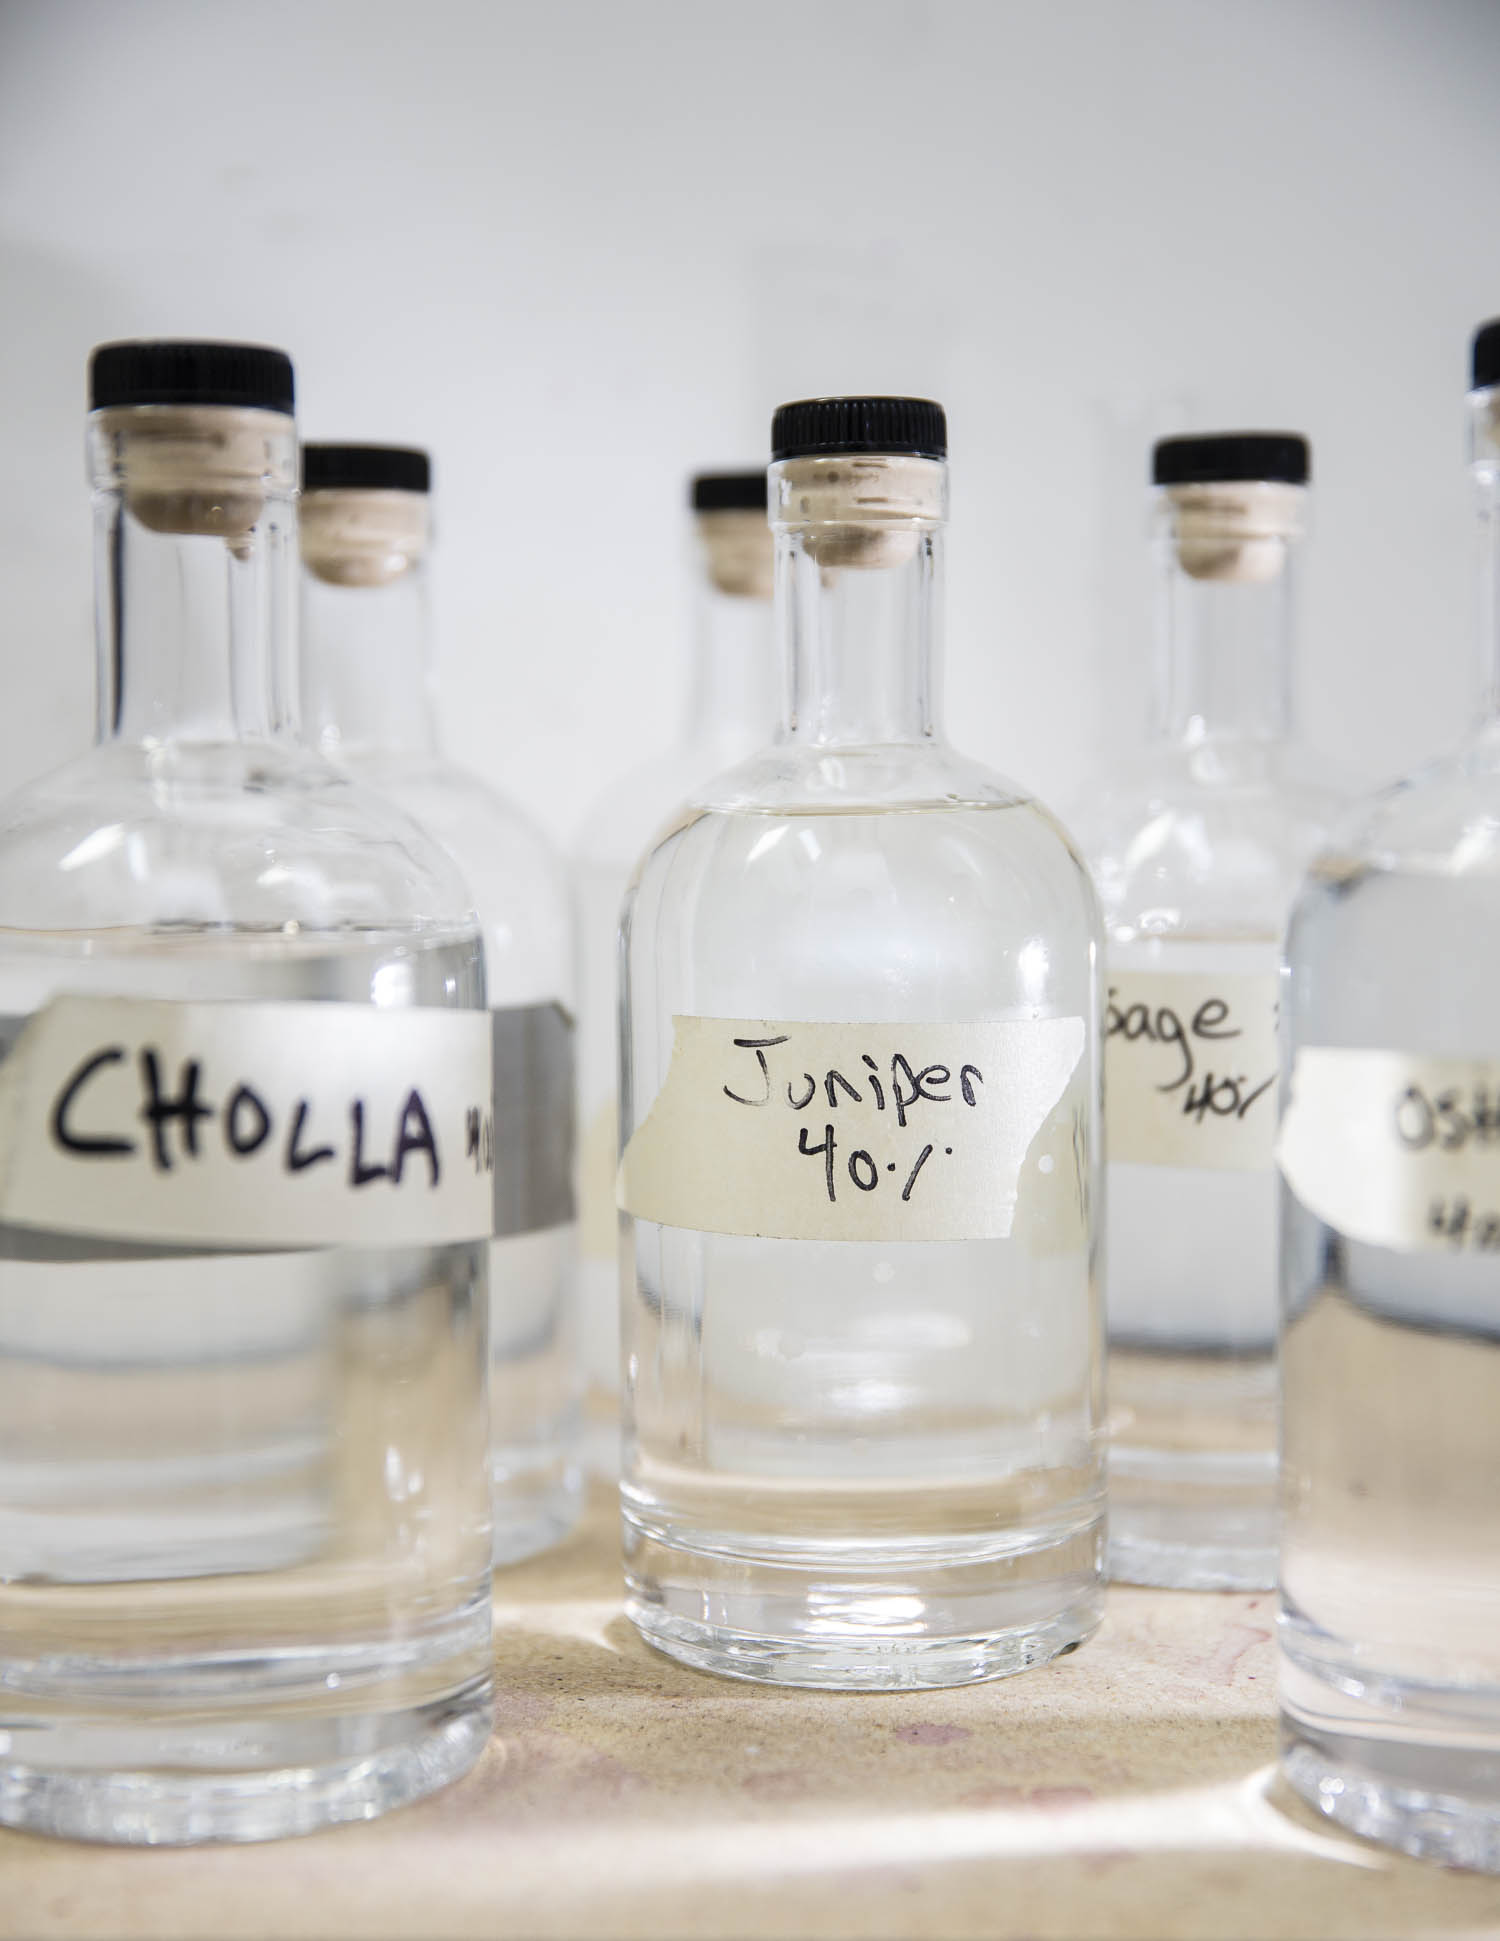 Santa Fe Spirits uses New Mexican botanicals to flavor its gin. Photos by Jen Judge.